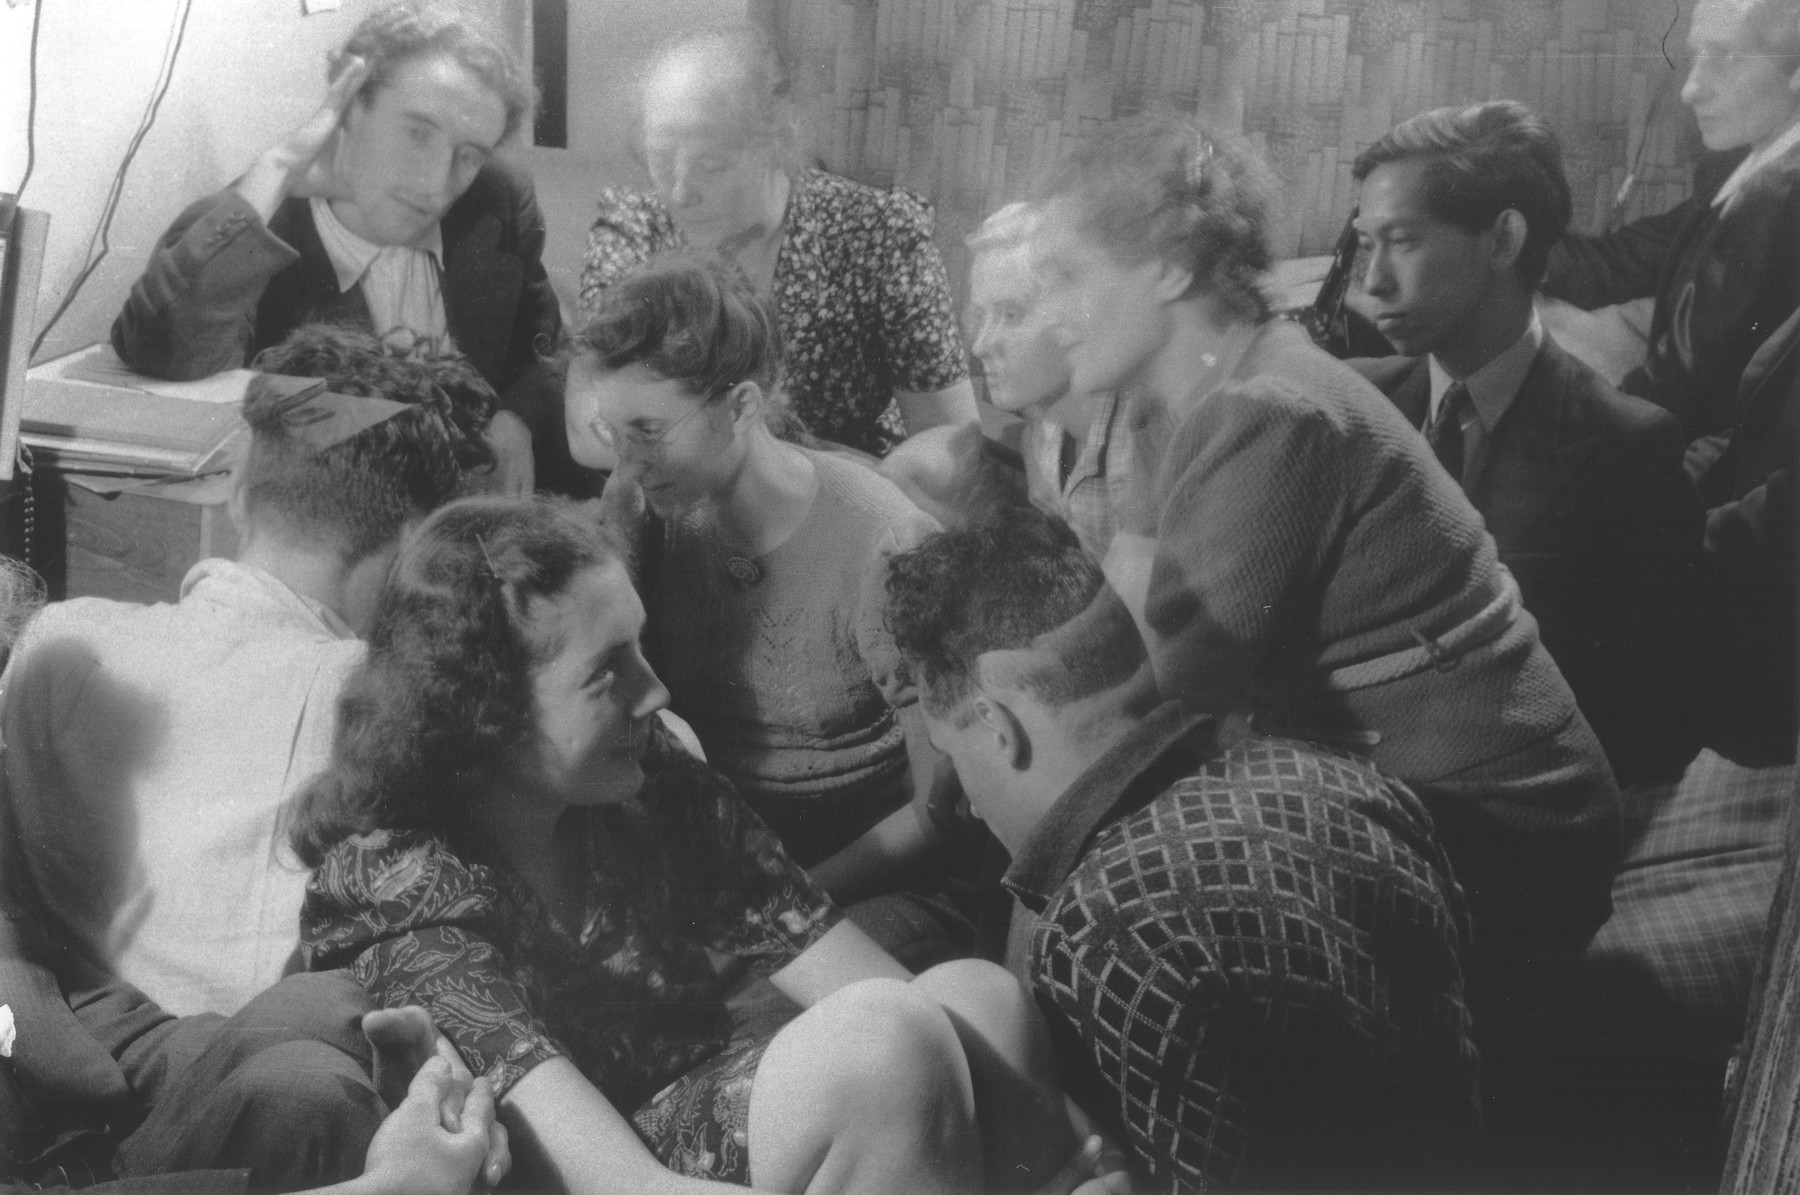 A group of Dutch resistance members and hidden Jews are crowded into a room [possibly to listen to a clandestine radio].  Those pictured include Bep Klant, Rosette Aussen-Muscoviter, Dirk Pos, Benno Aussen and Lizzy Pos.